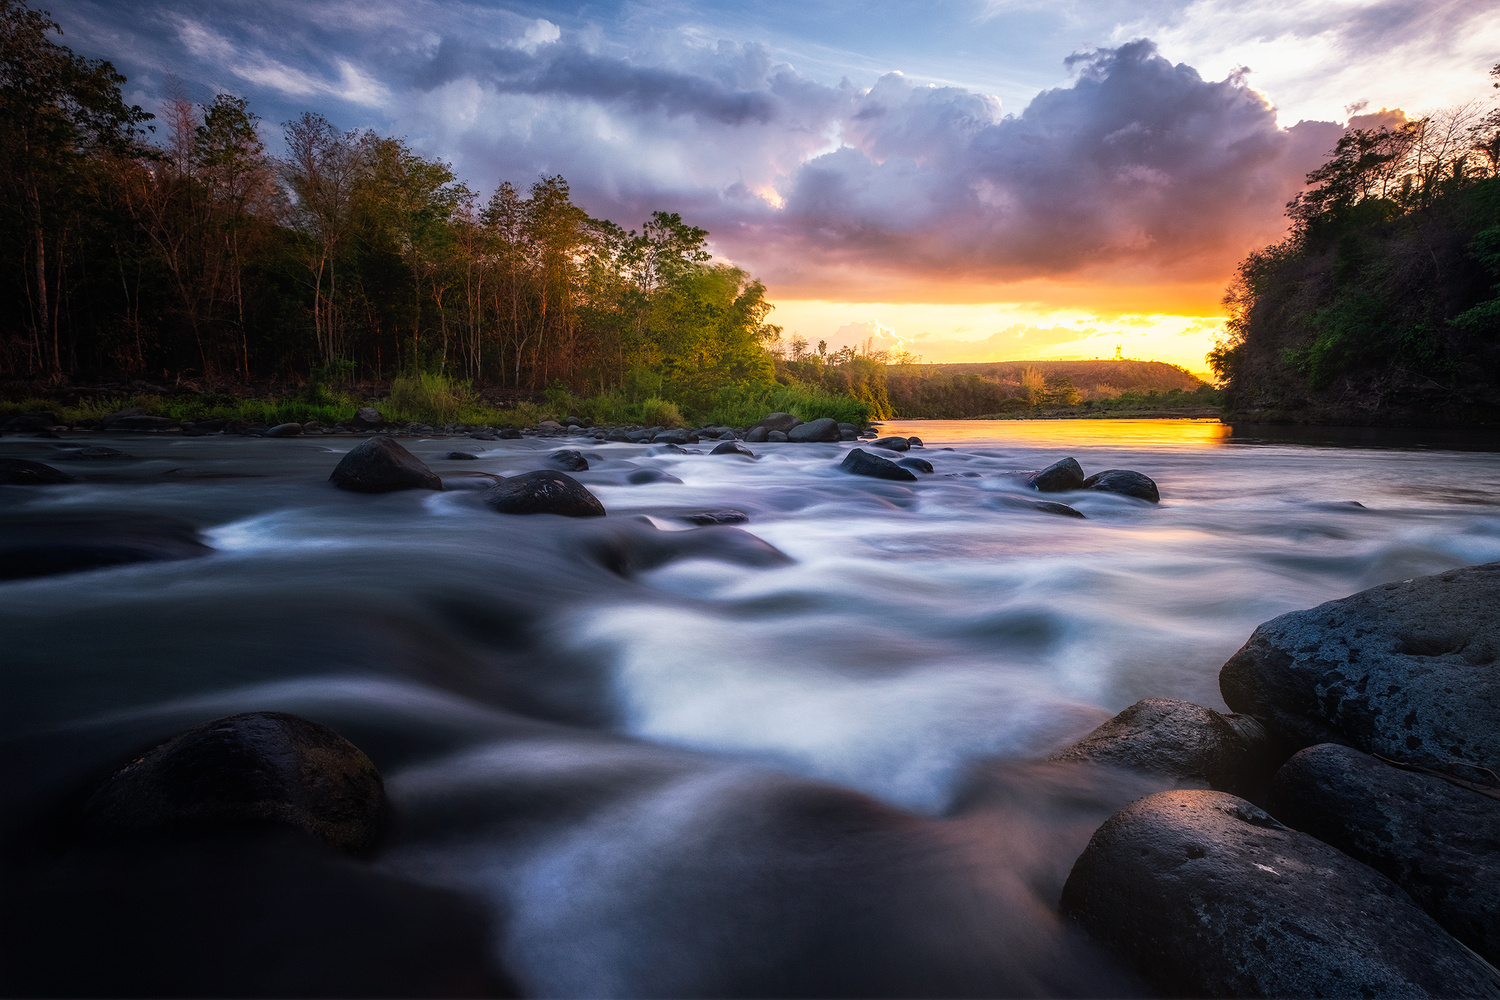 Light at the End of the River by John Kimwell Laluma